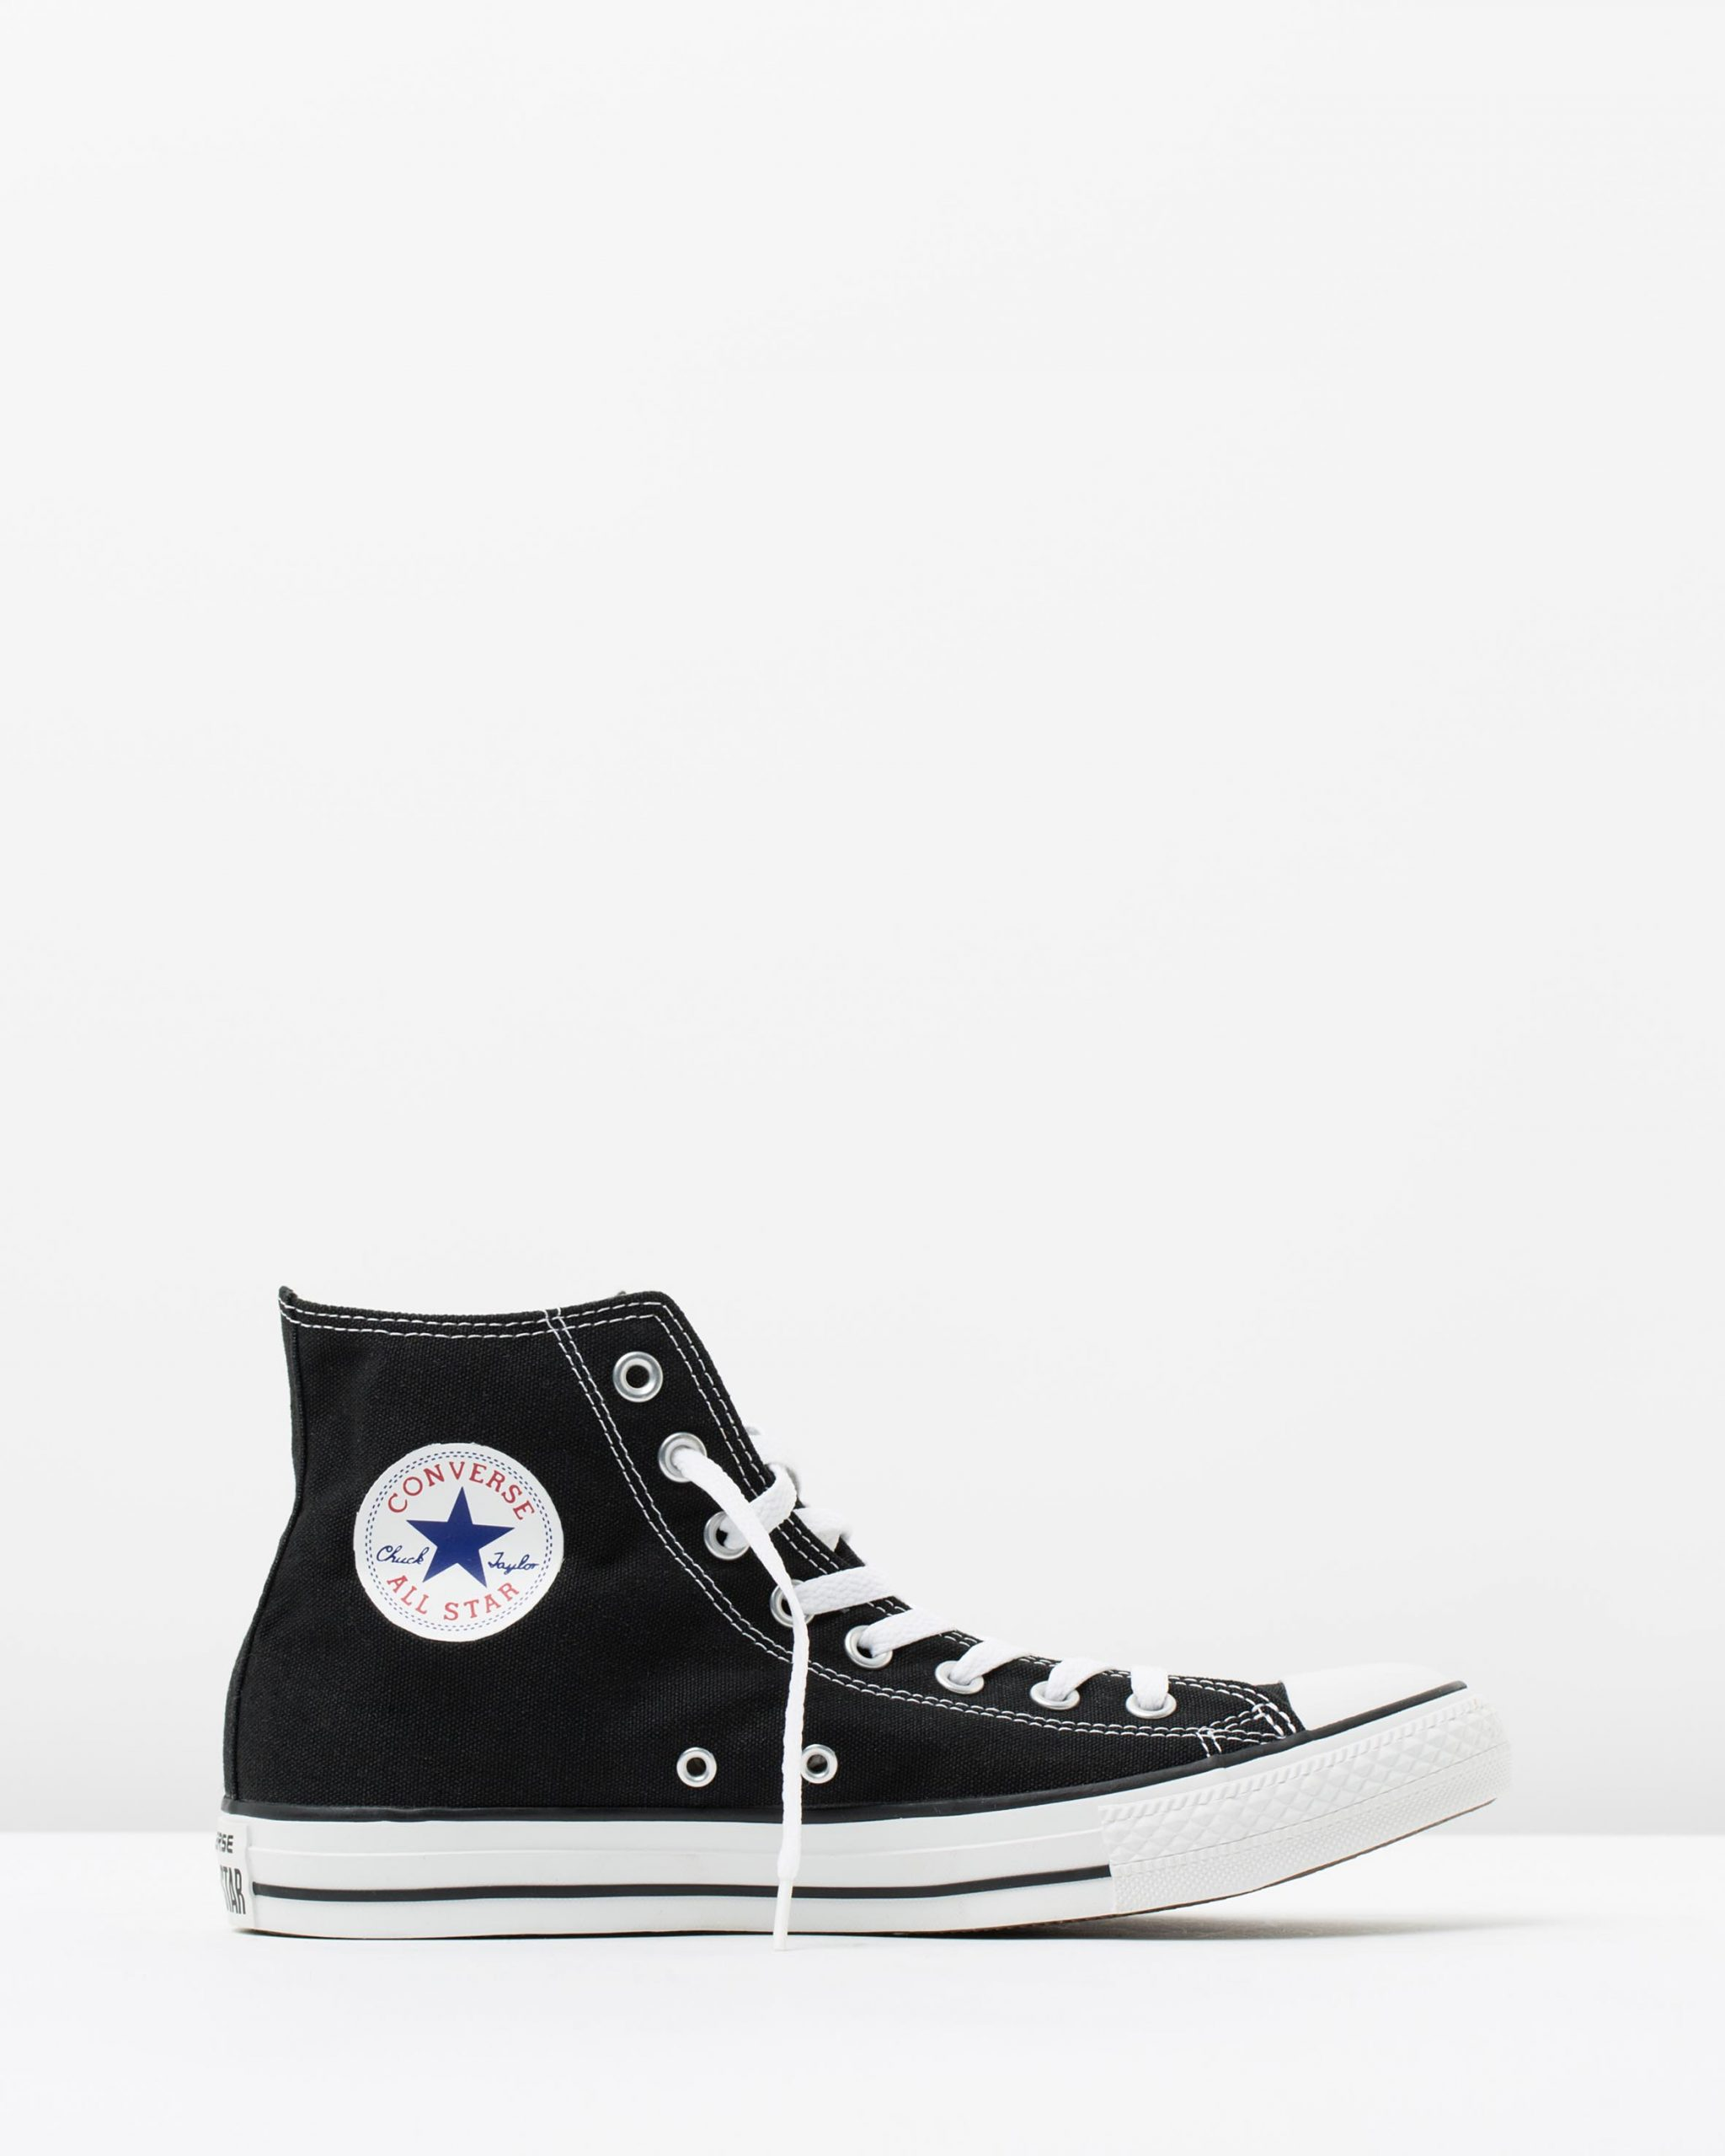 Converse Chuck Taylor All Star Hi Womens Black